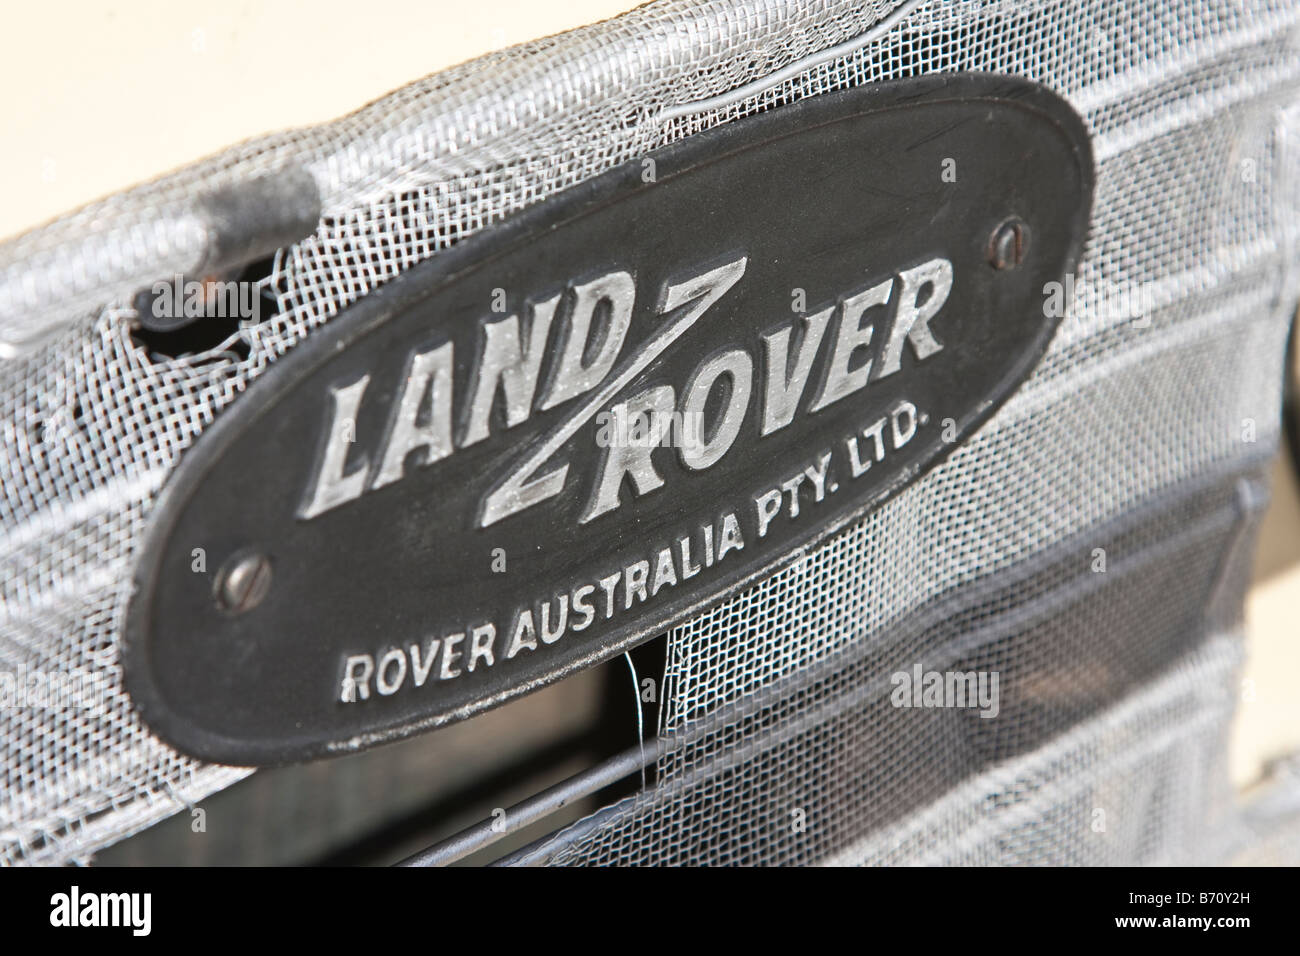 Land Rover Australia Pty Ltd badge on nose of Land Rover Six - Stock Image